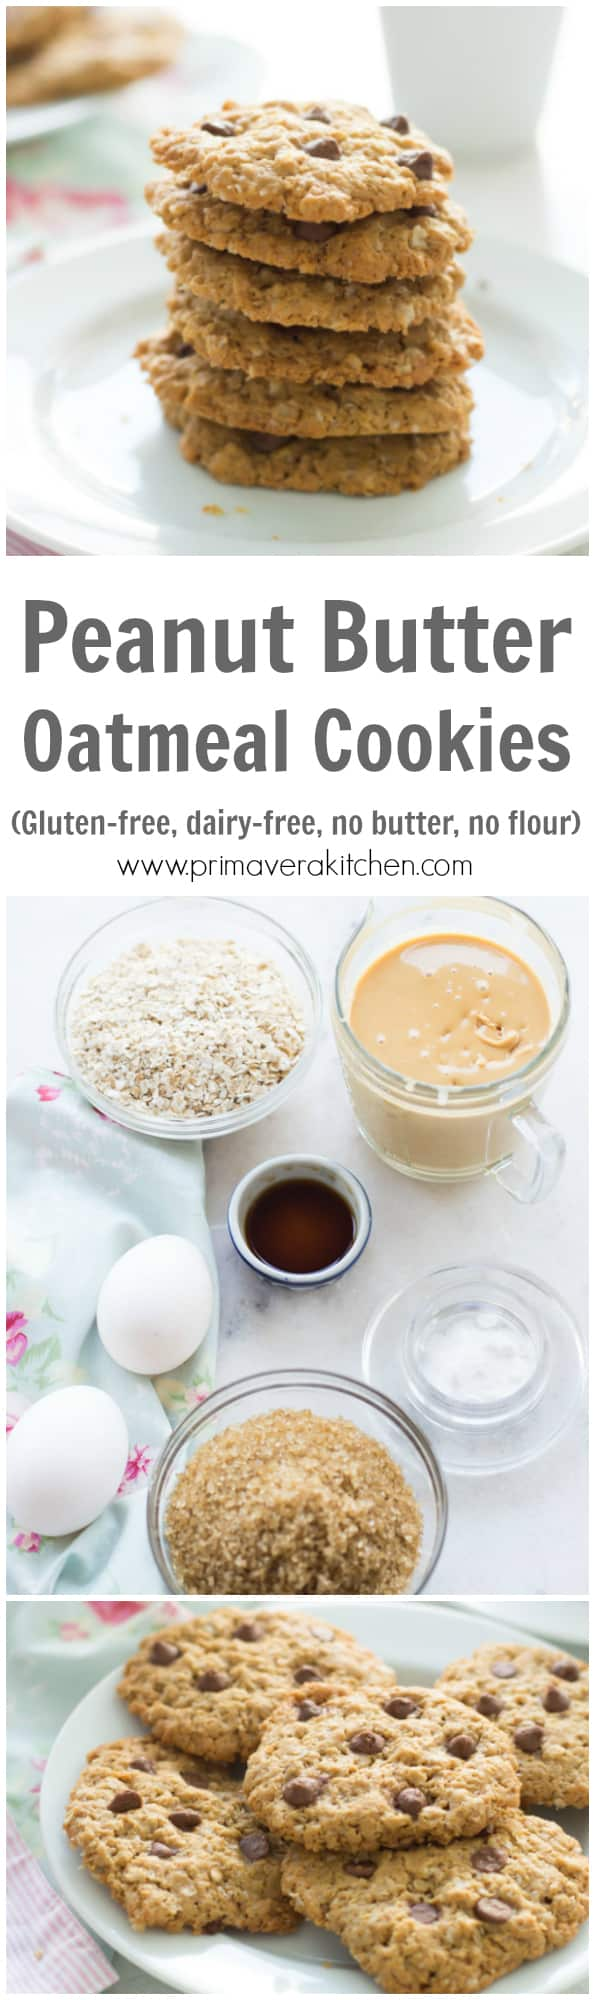 Healthy Peanut Butter Oatmeal Cookies - This delicious, soft, chewy and gluten-free Healthy Peanut Butter Oatmeal Cookies are made with no flour and it is also dairy-free!